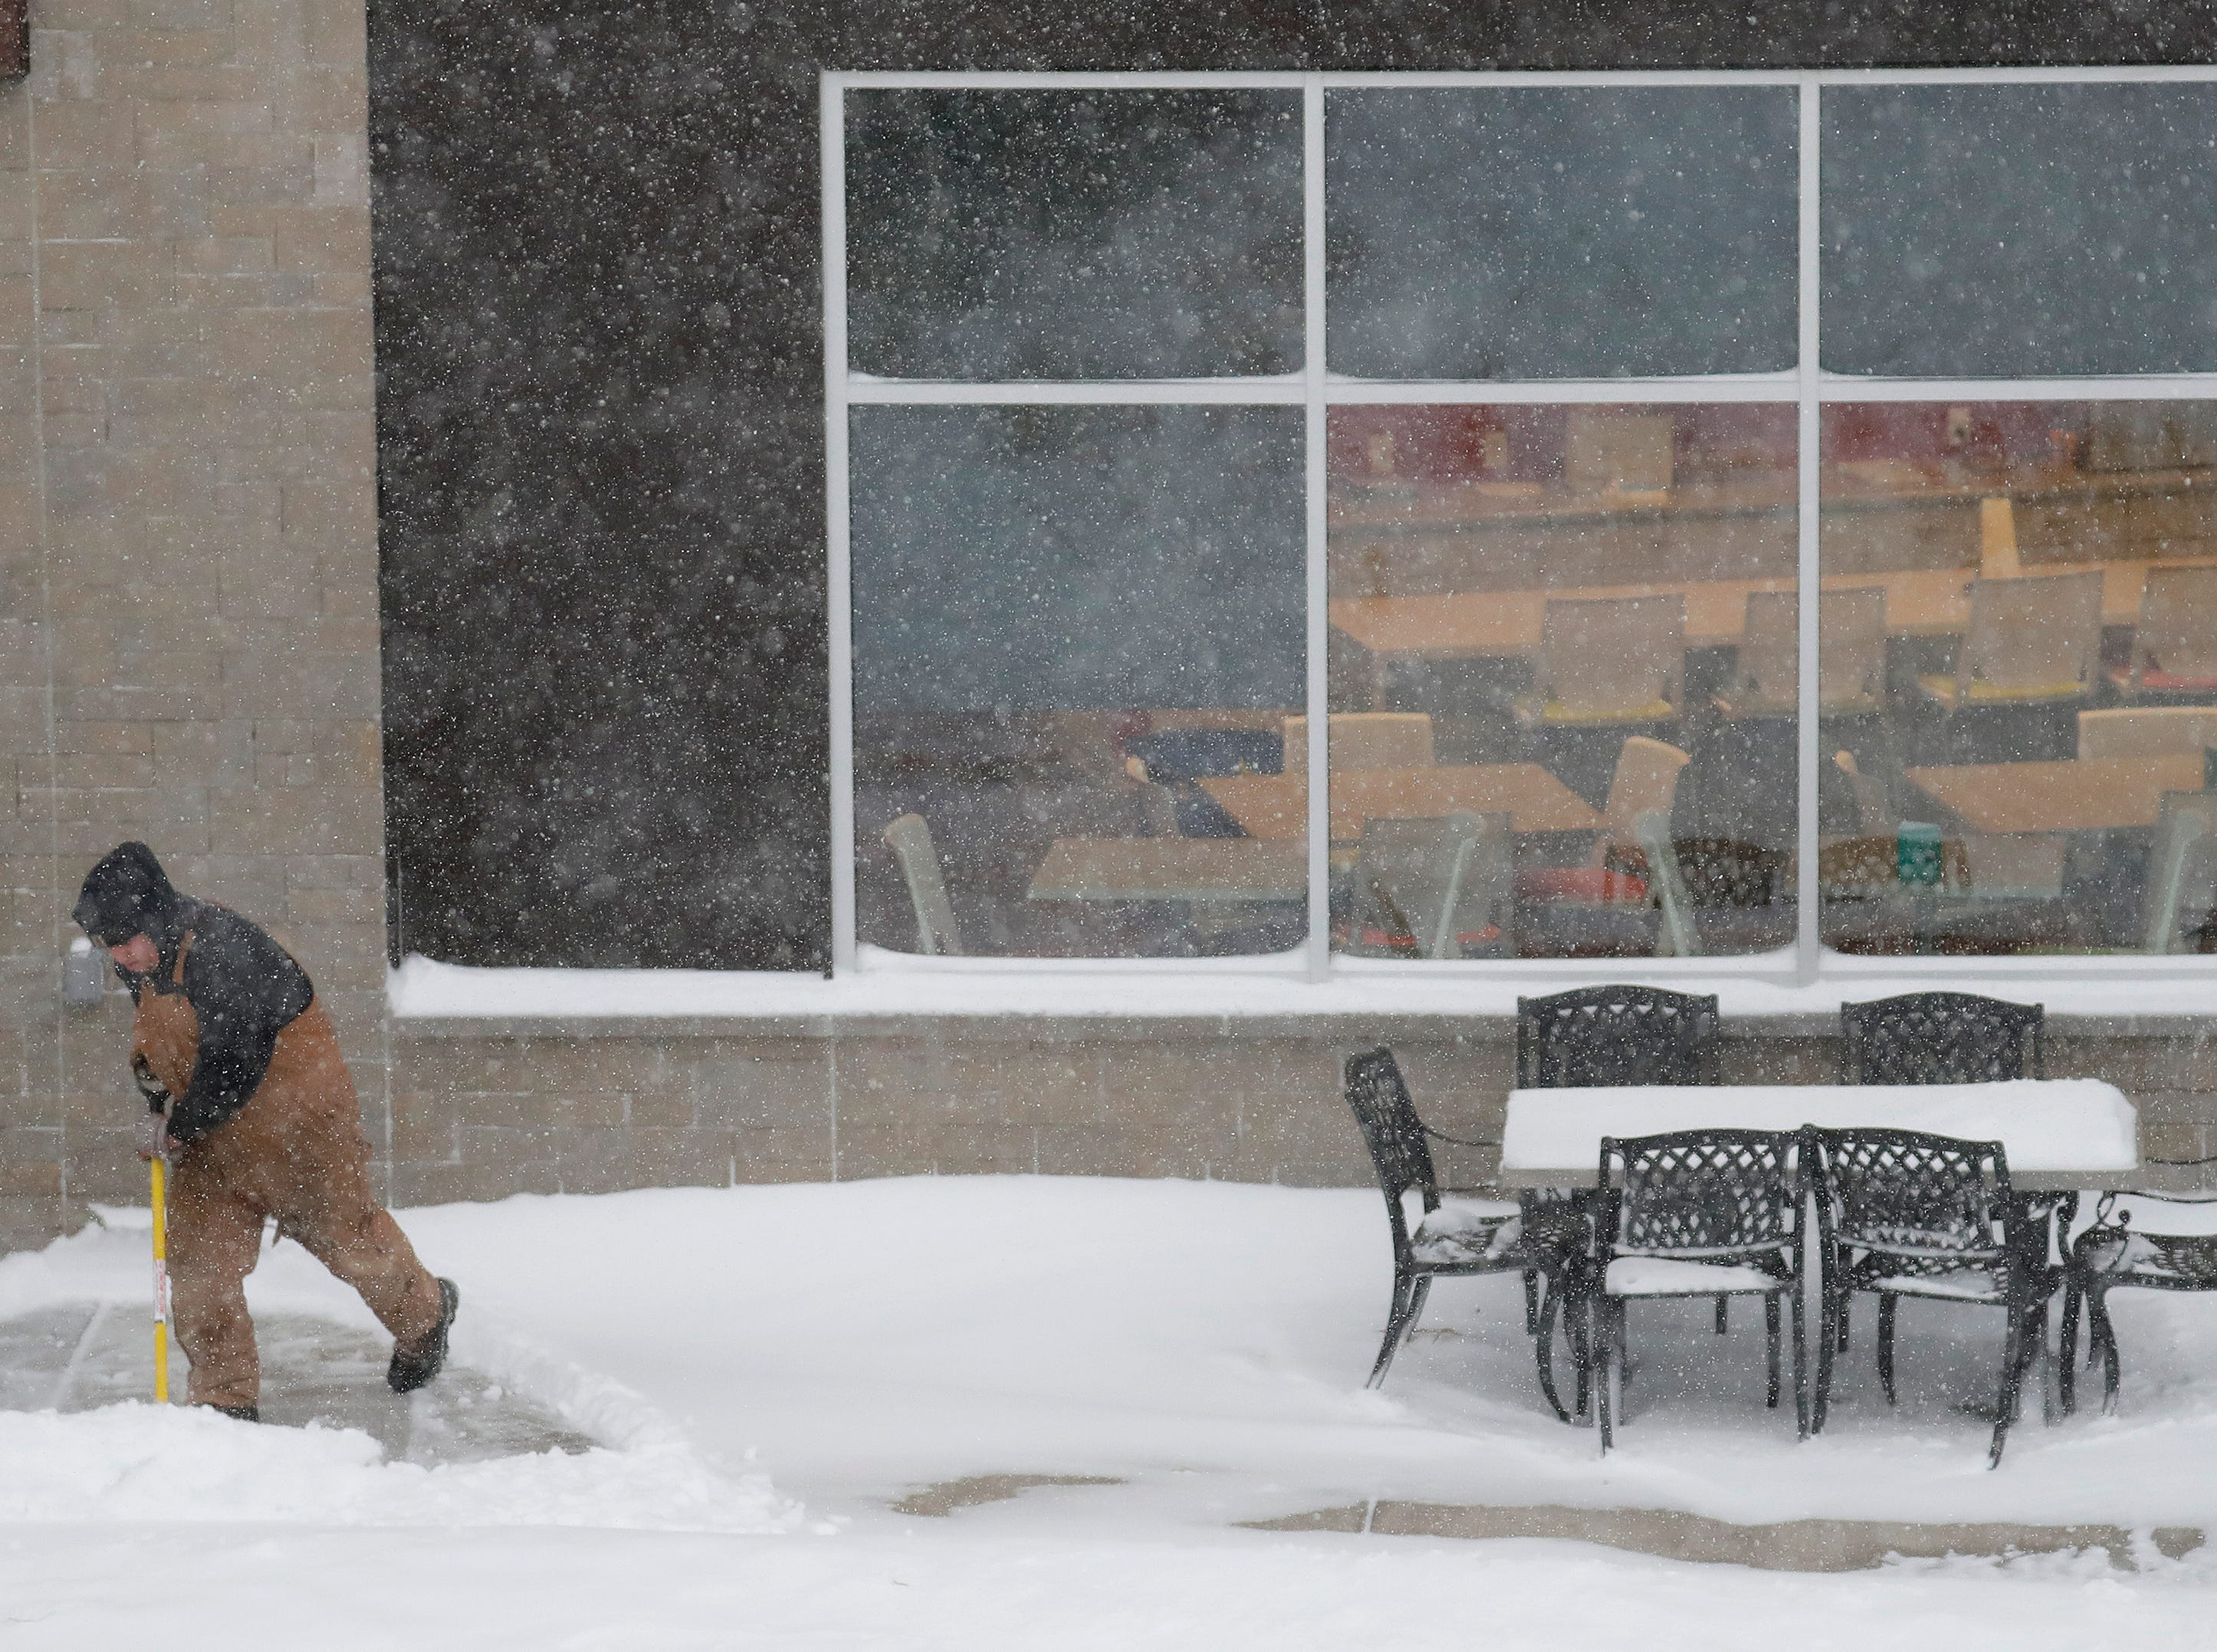 Taylor Vandermoss of Kaukauna shovels snow from a walkway at Thrivent Federal Credit Union during a snowstorm Monday, Jan. 28, 2019, in Appleton, Wis.